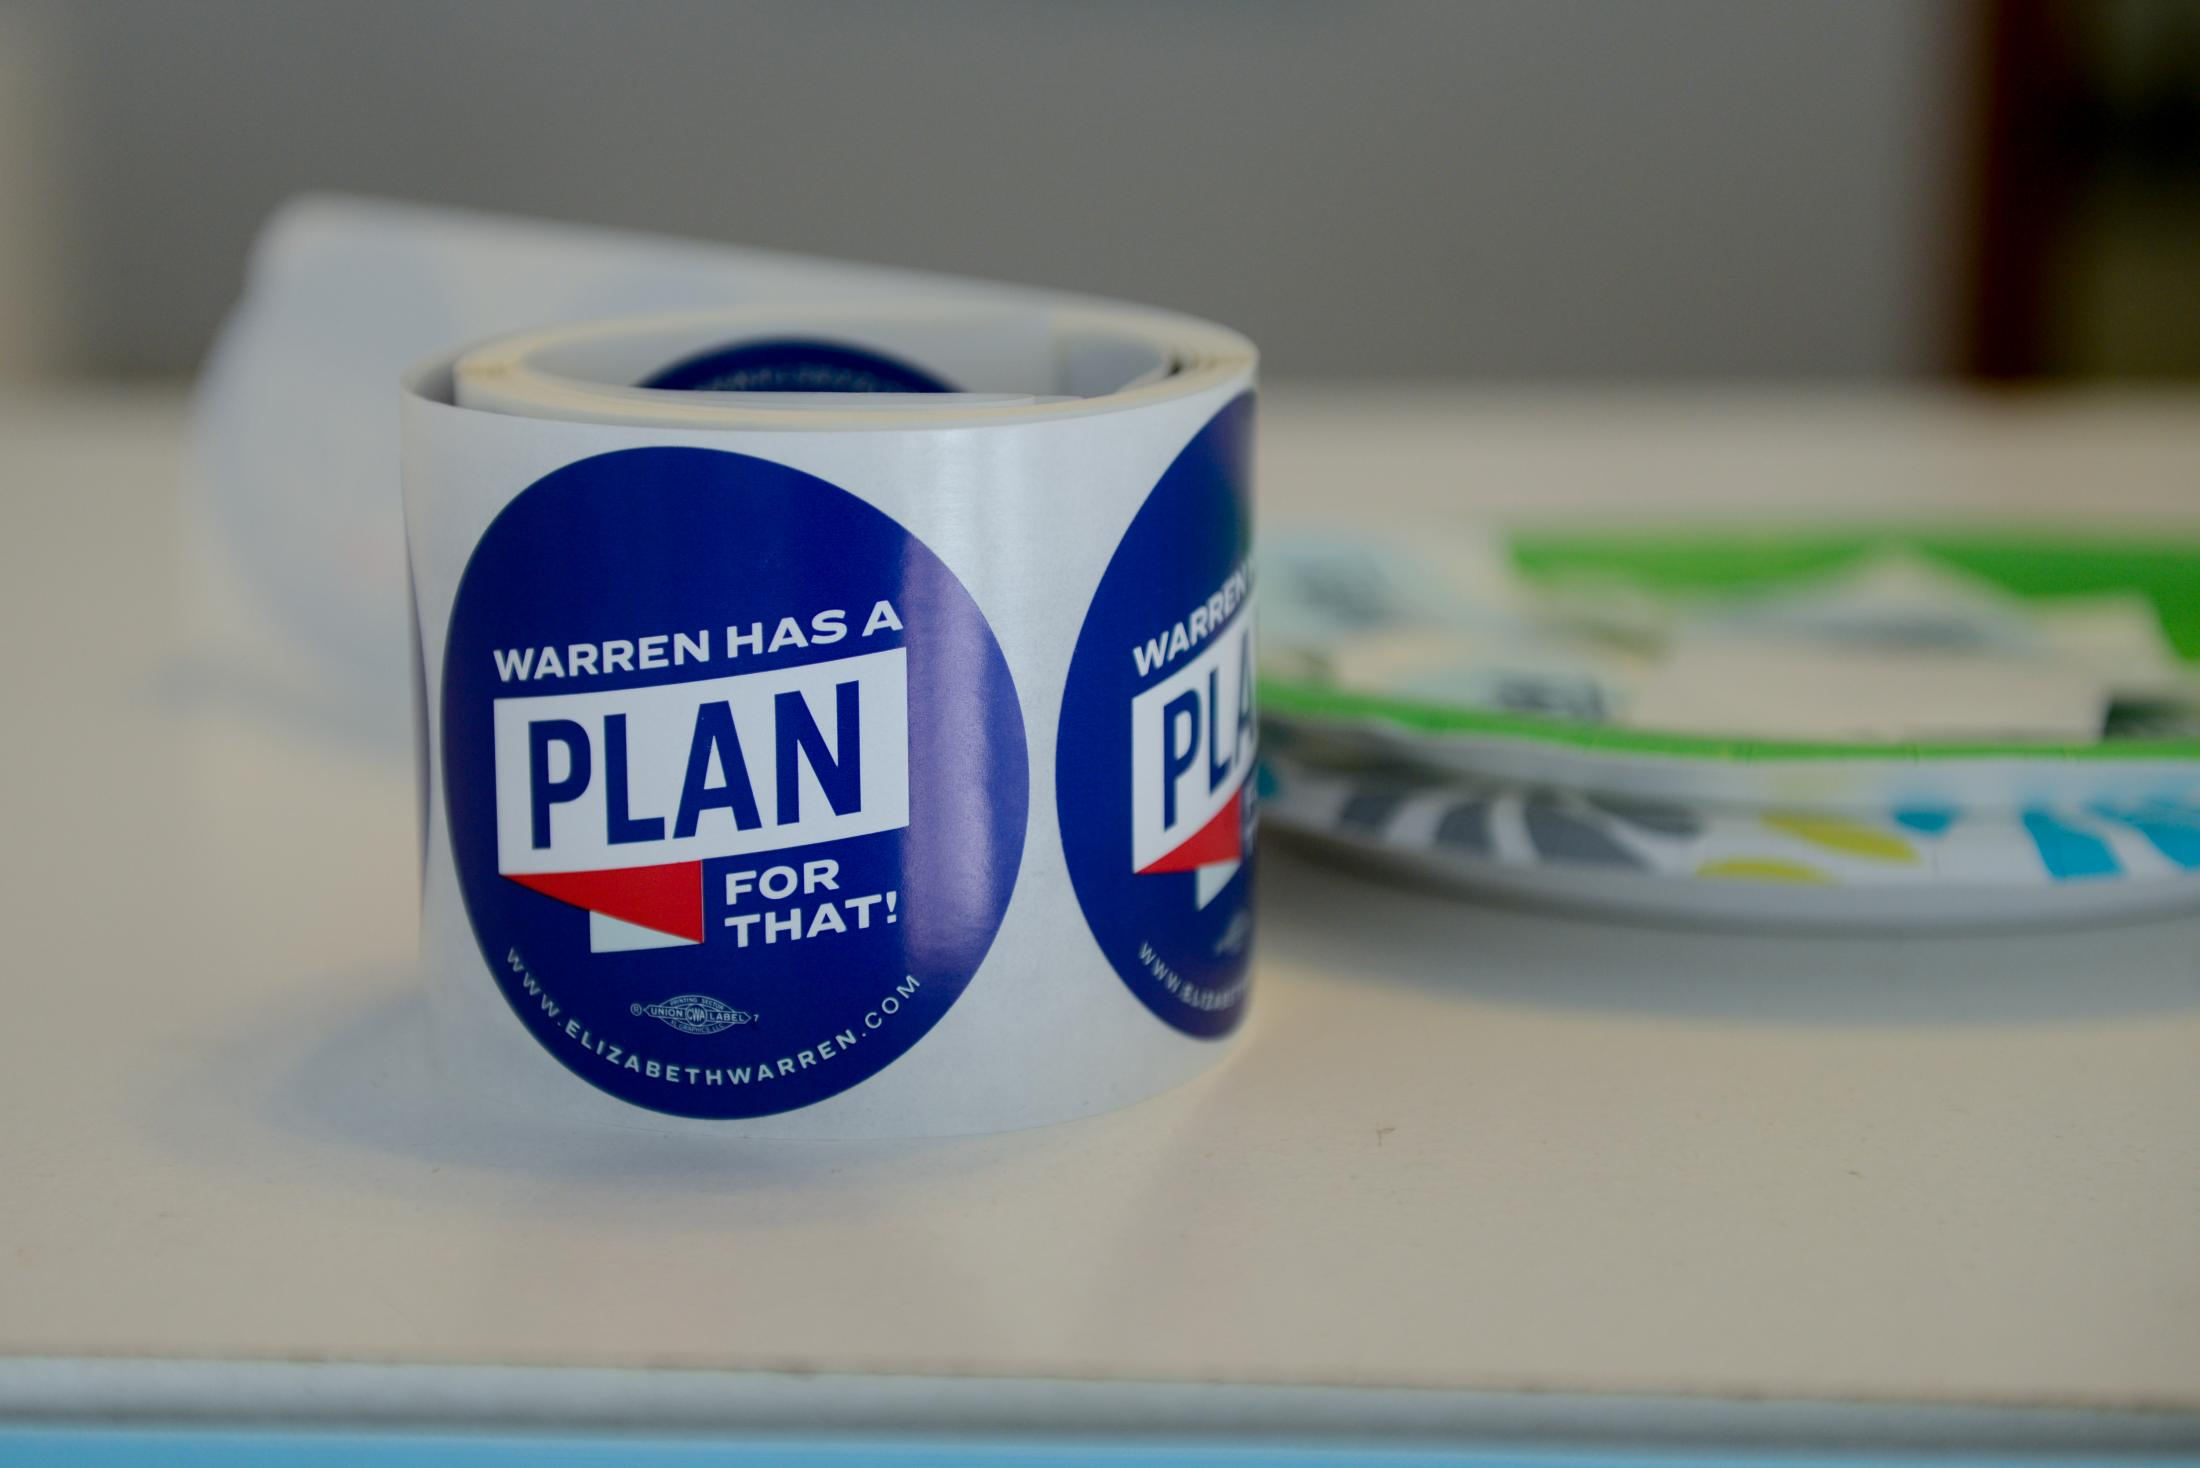 A roll of campaign stickers sits on the counter of the Elizabeth Warren presidential campaign office on the day of the Iowa caucus Monday, February 3, 2020 in Fort Madison, Iowa. Senator Elizabeth Warren is not in Iowa for the caucus because she is in Washington, D.C. along with fellow democrats Senator Bernie Sanders and Senator Amy Klobuchar for the impeachment trial of President Donald Trump.